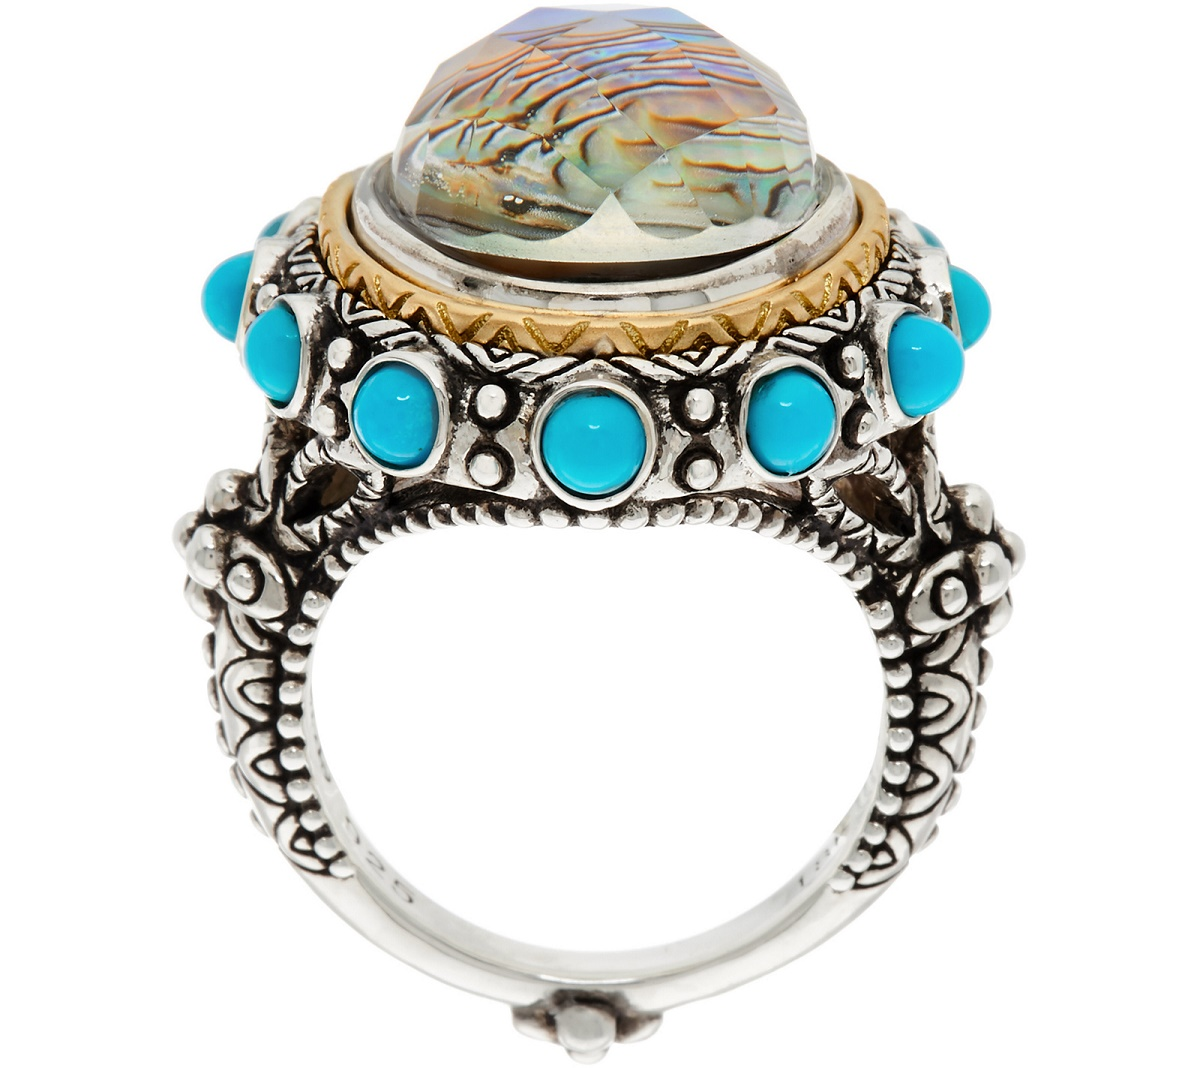 Barbara Bixby Sterling/18K Abalone Doublet & Turquoise Ring